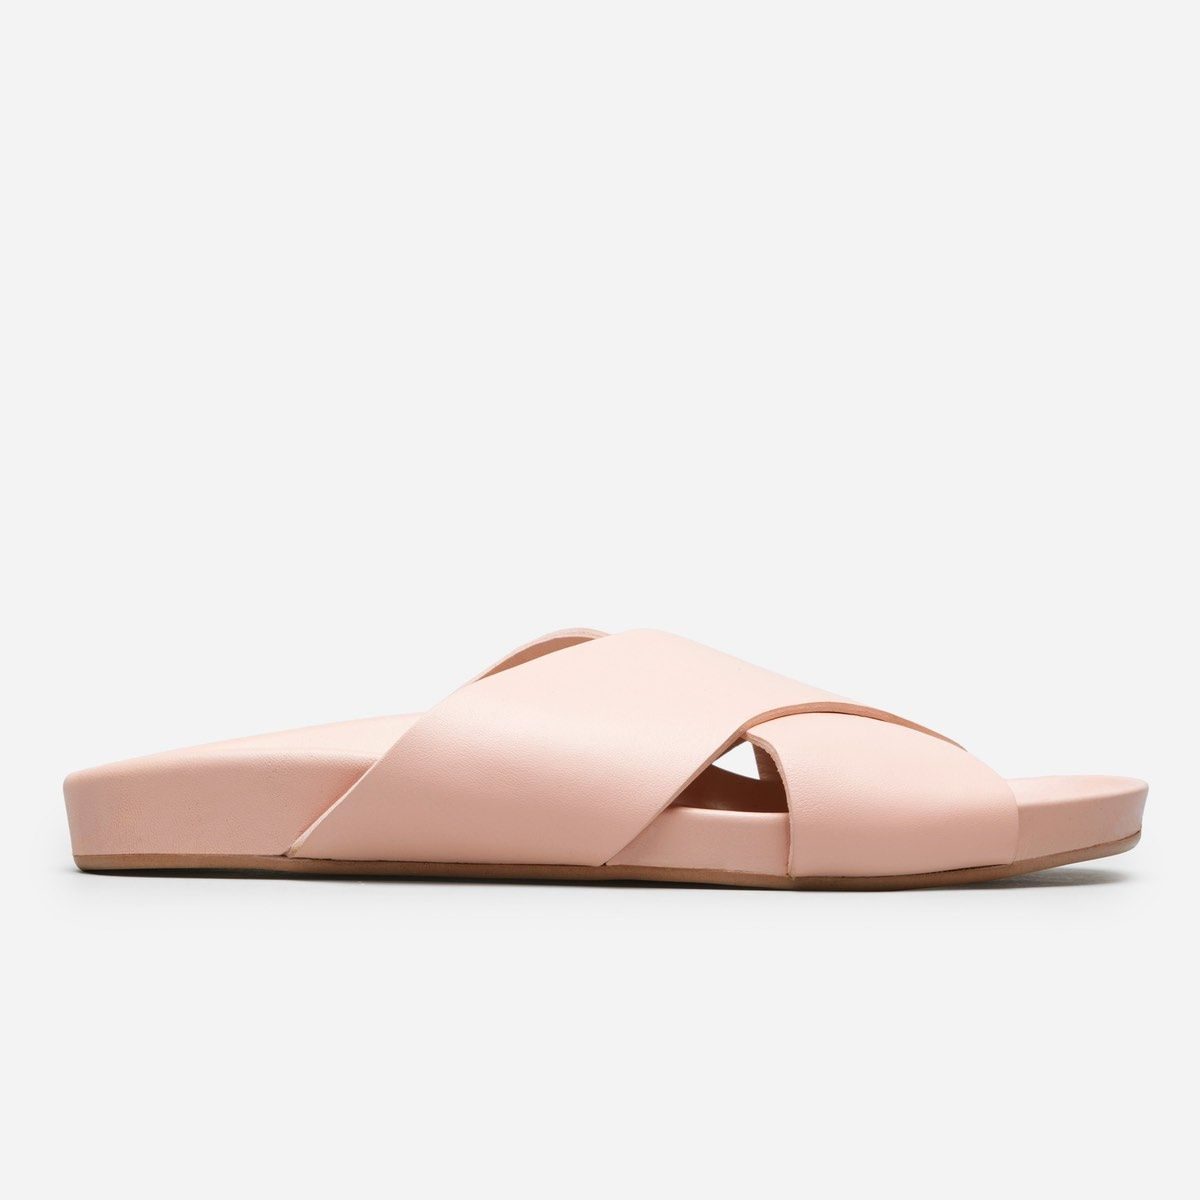 e758d3b4685 The Form Crossover Sandal